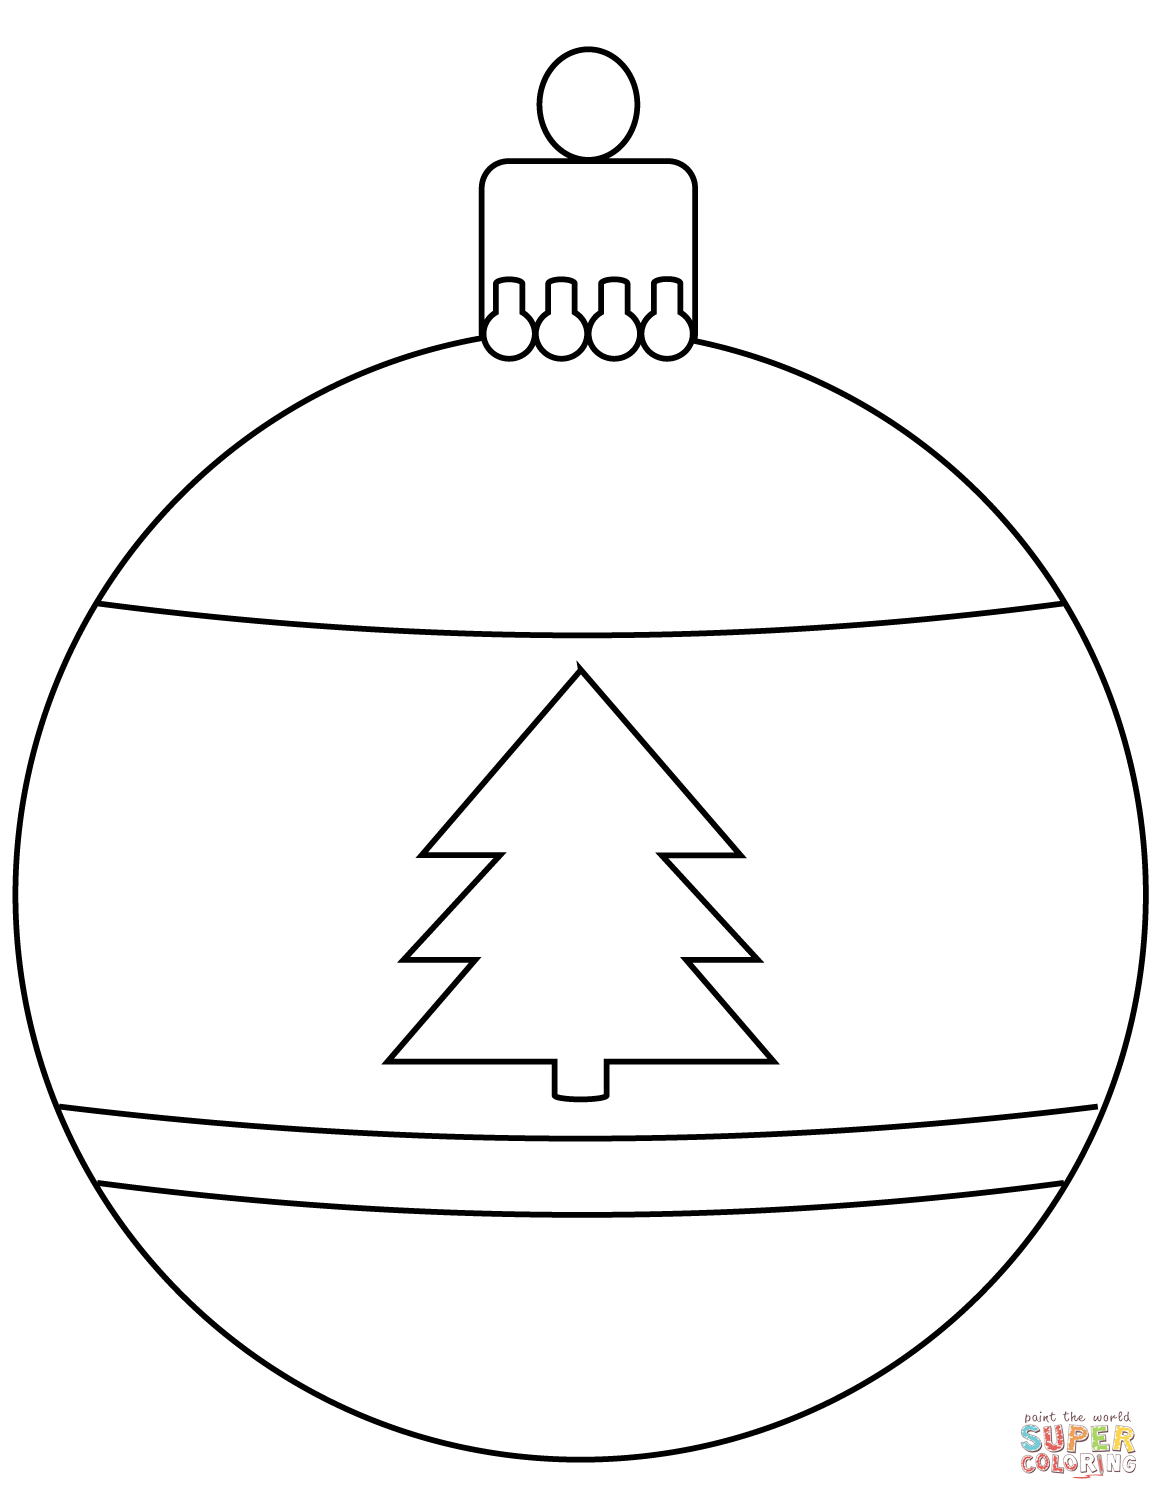 Christmas Bauble Ornament Coloring Page